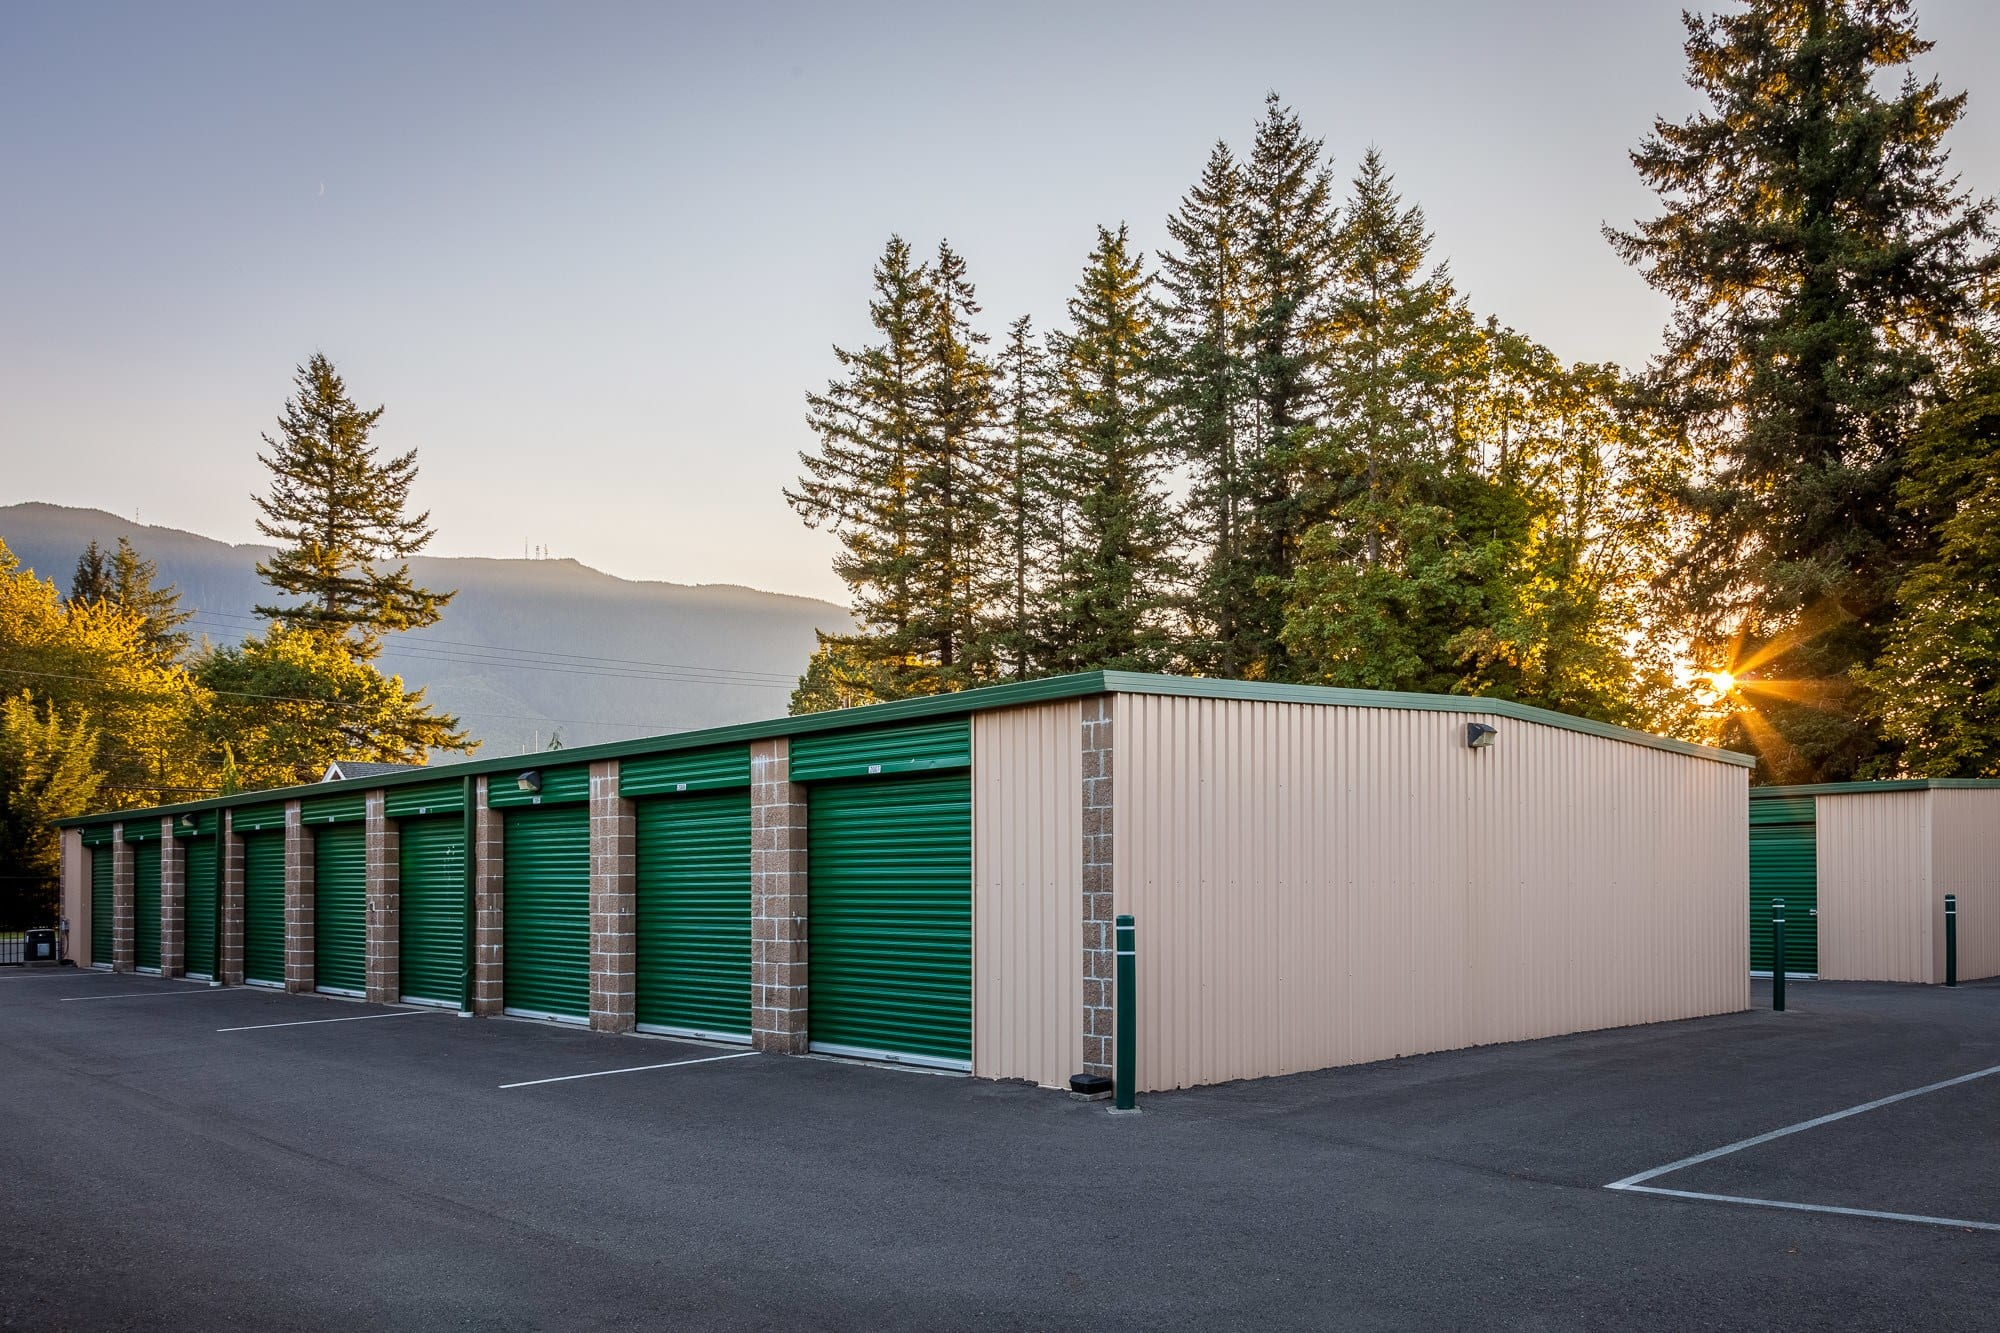 Exterior of self storage facility in North Bend, Washington